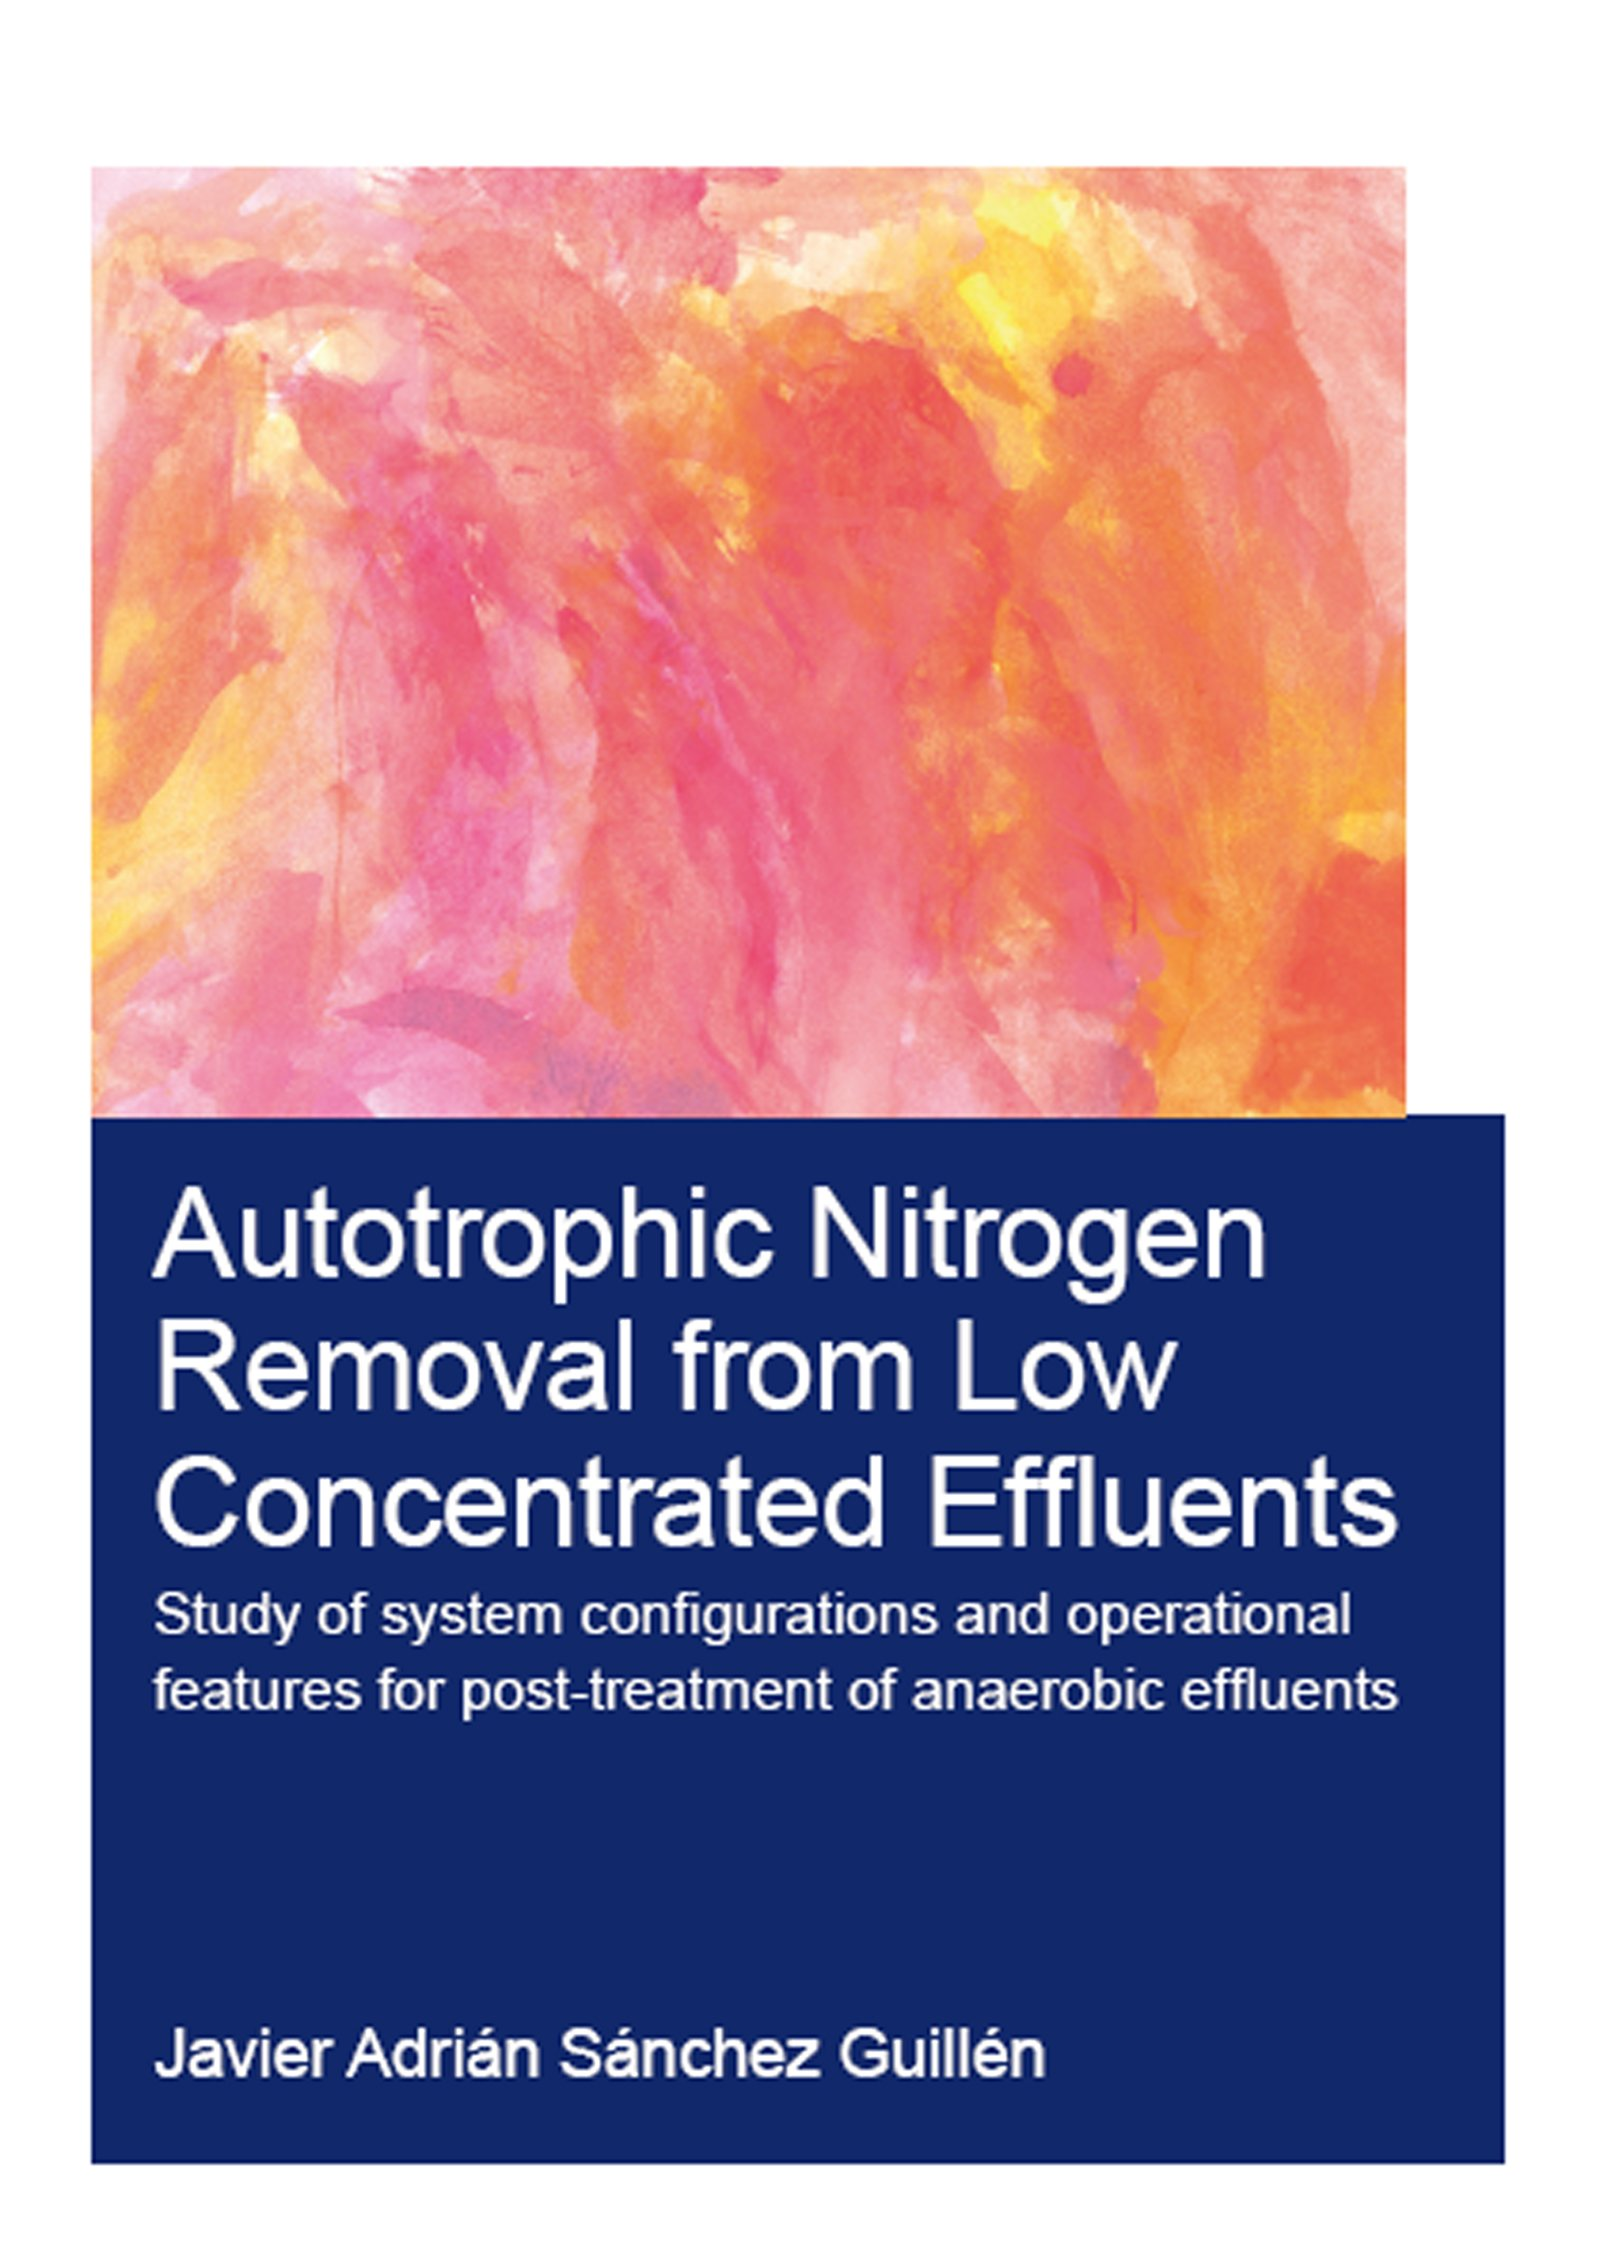 Autotrophic Nitrogen Removal from Low Concentrated Effluents: Study of System Configurations and Operational Features for Post-treatment of Anaerobic Effluents book cover